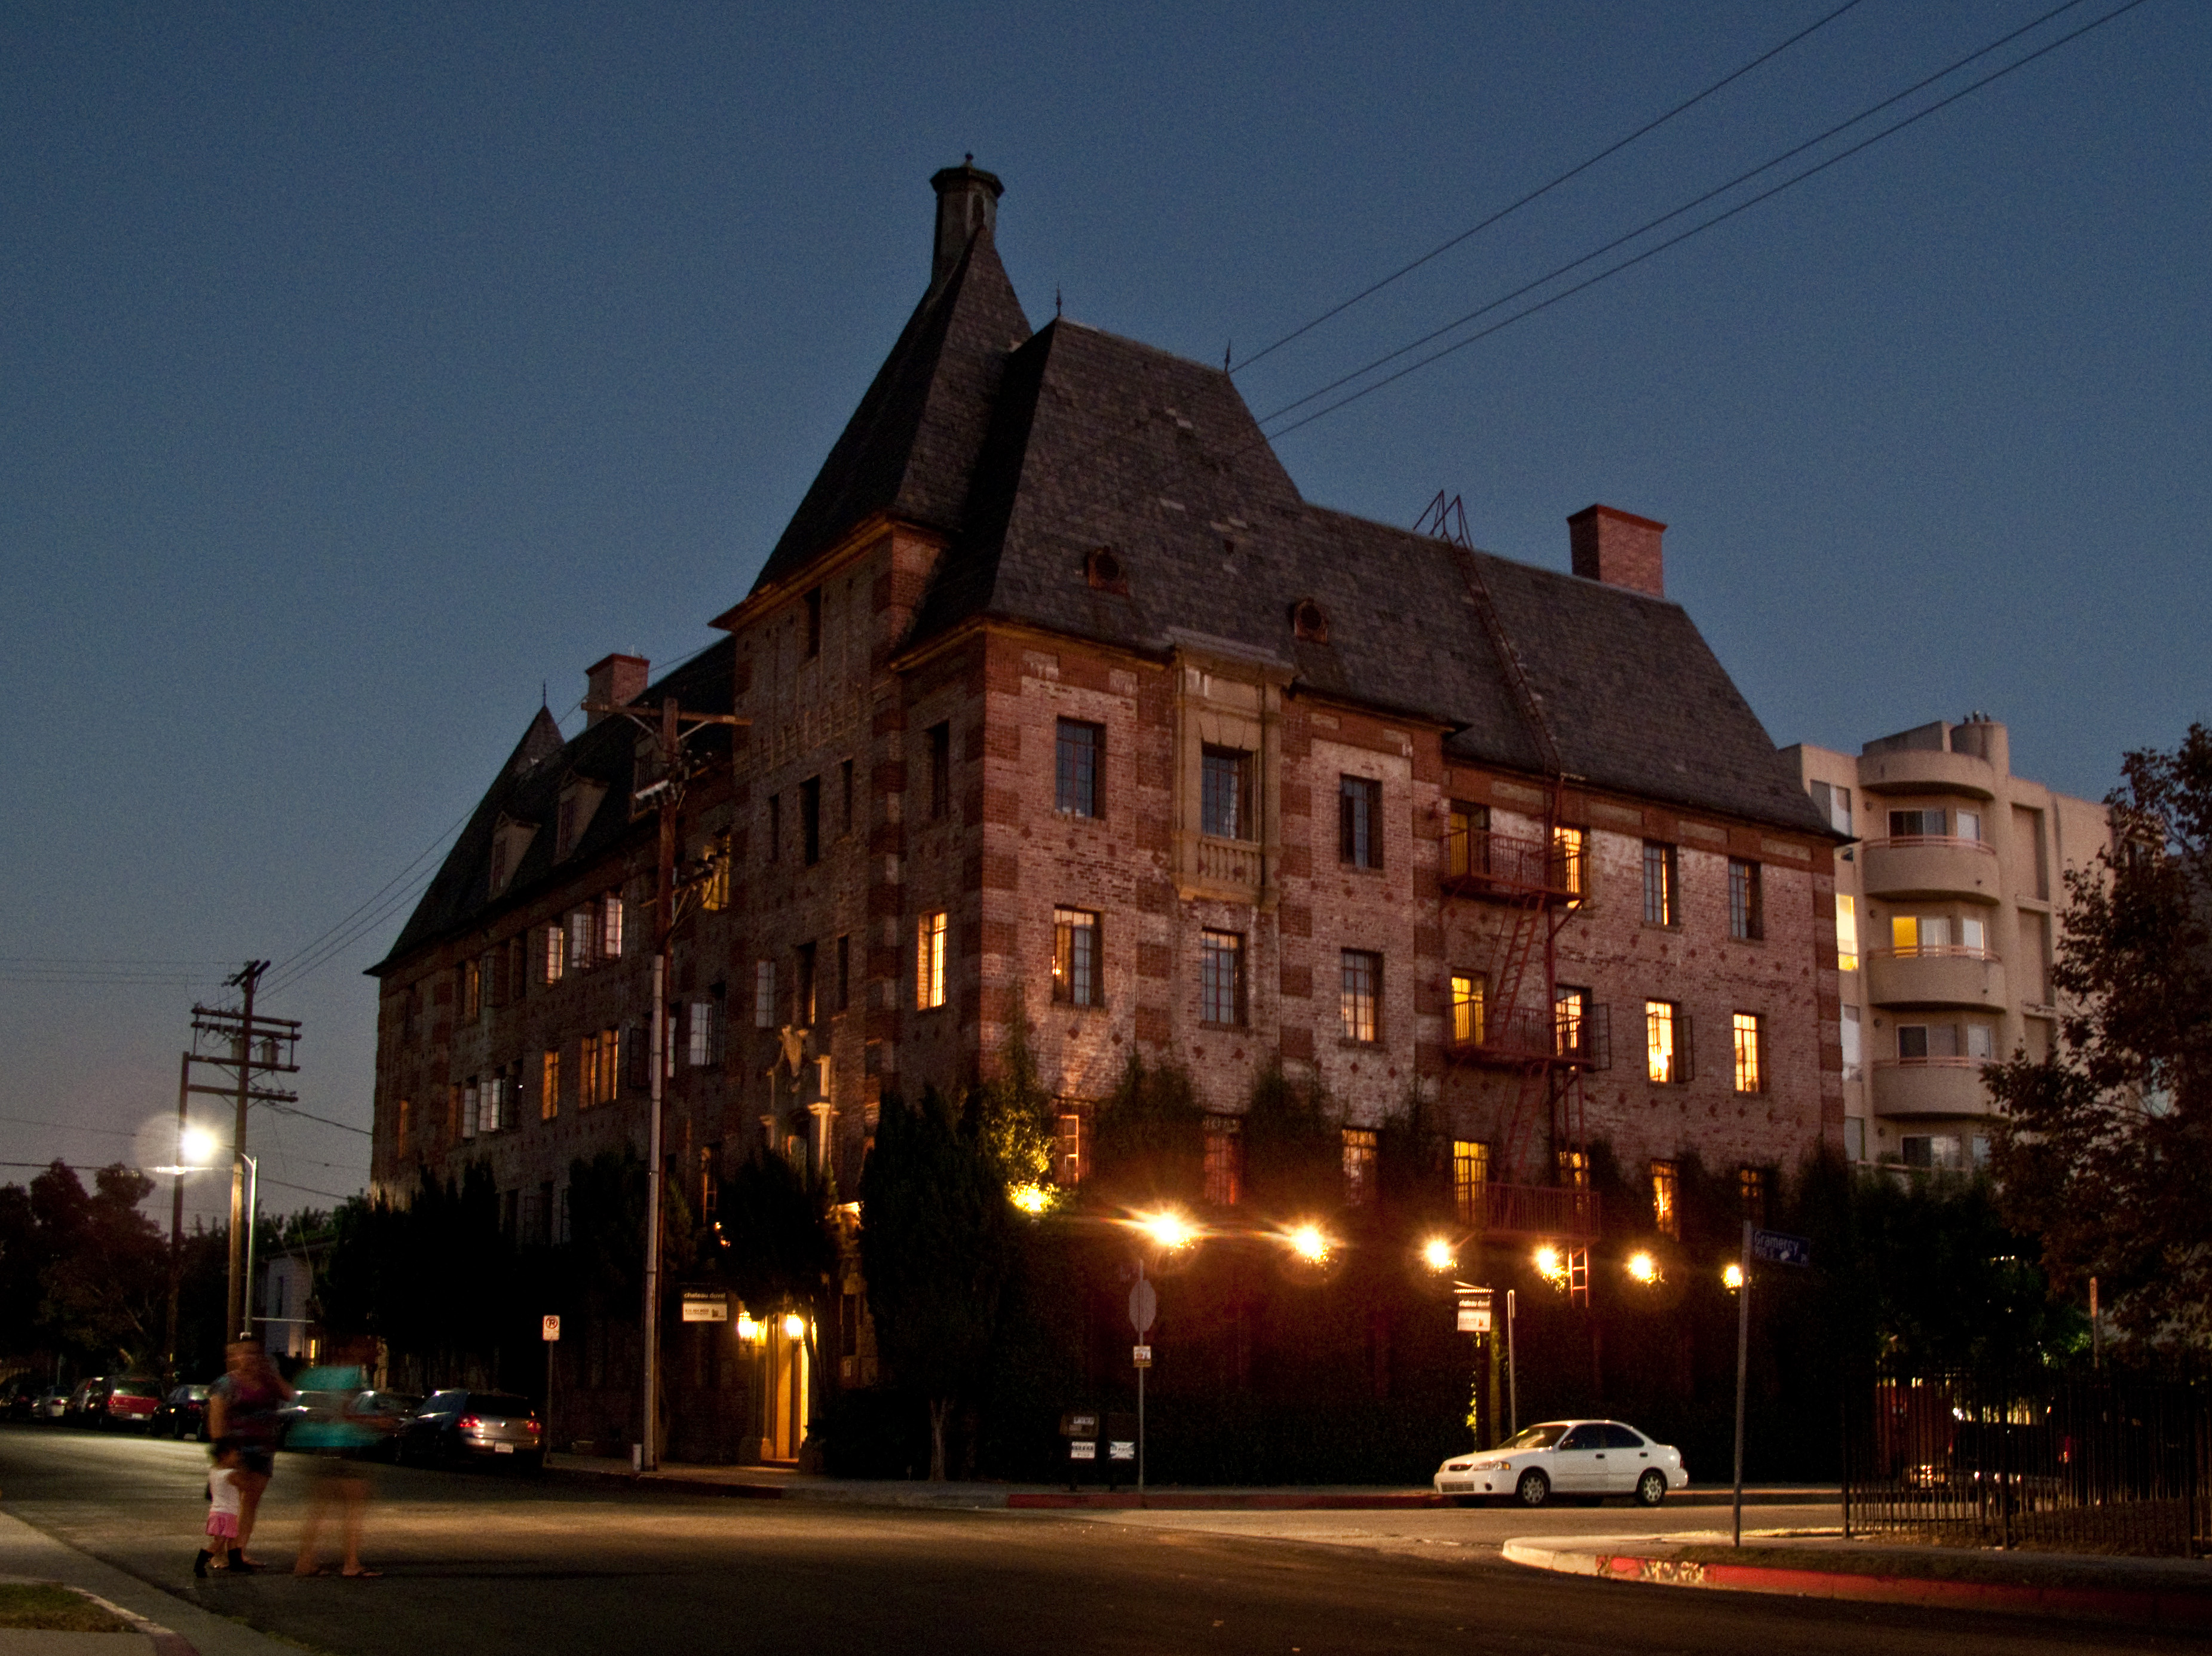 File:Chateau Duval Apartments, Los Angeles.jpg - Wikimedia Commons After The Sunset